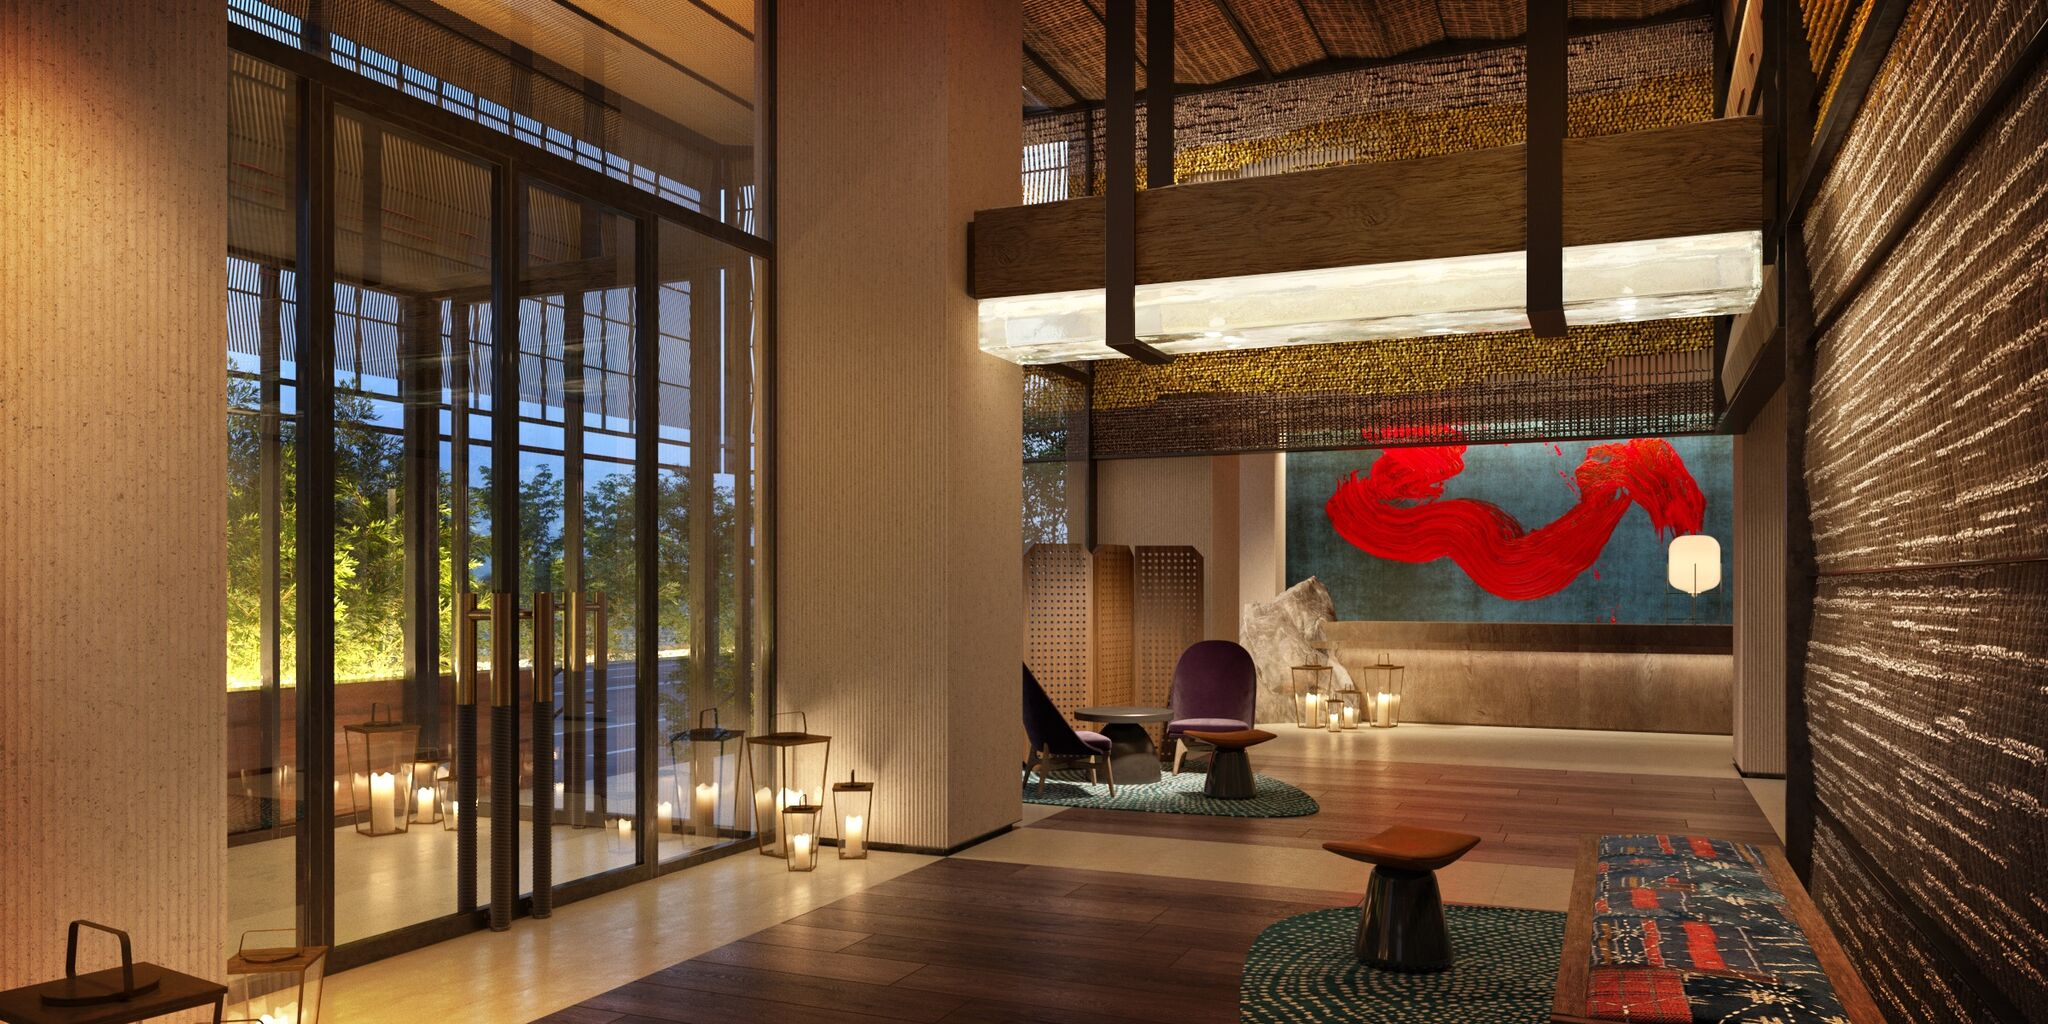 The chic lobby area at Nobu Hotel Barcelona